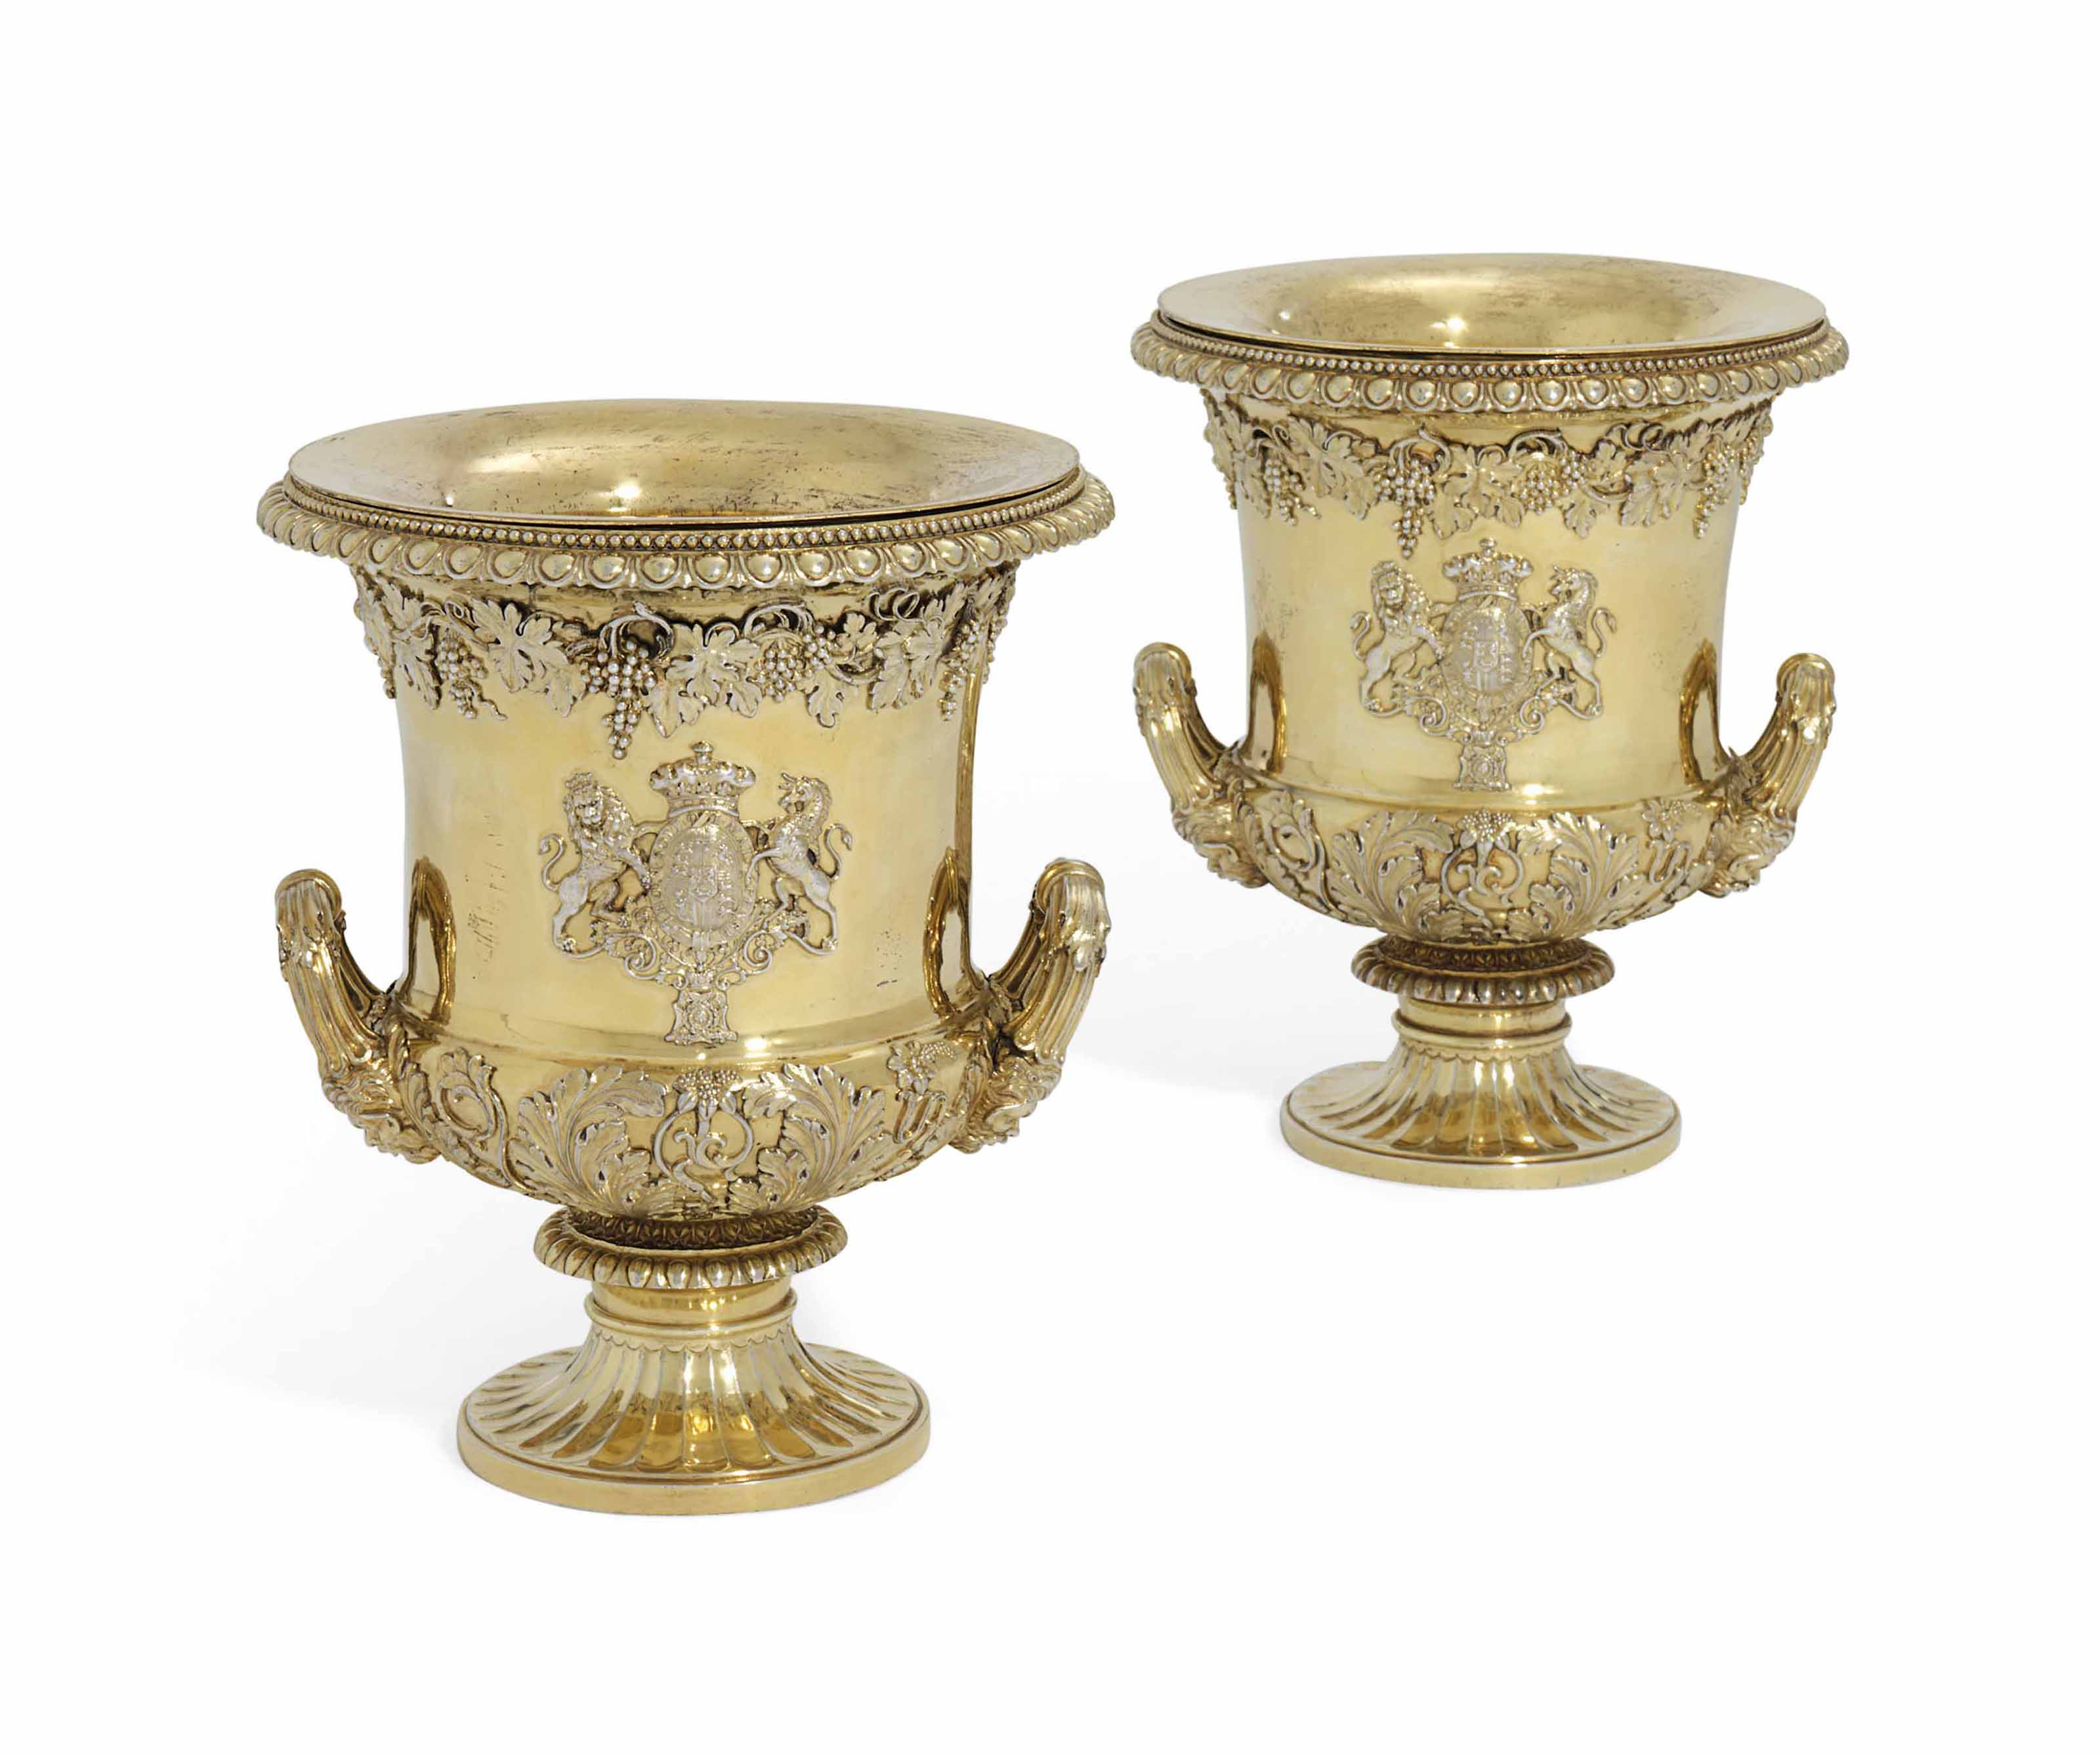 A PAIR OF GEORGE III SILVER-GILT WINE-COOLERS